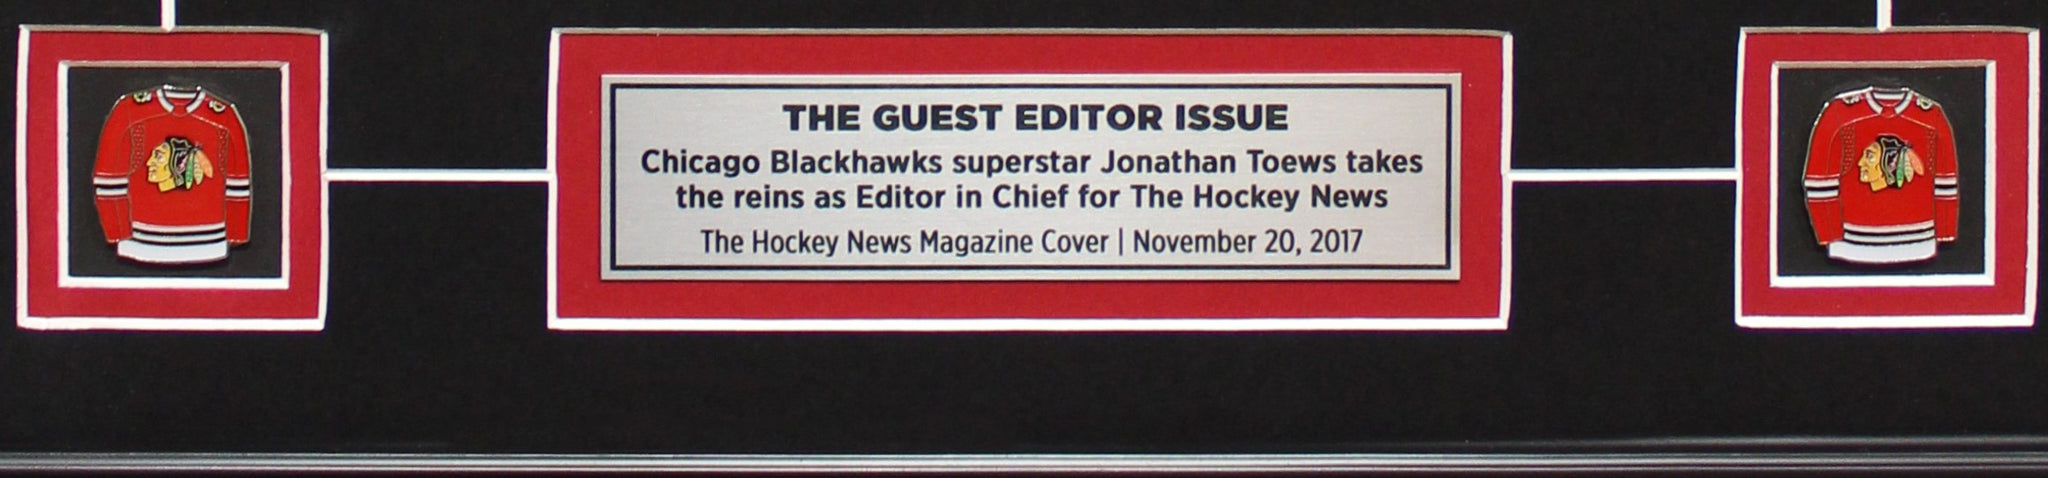 JONATHAN TOEWS   THE GUEST EDITOR ISSUE   FRAMED COVER – The